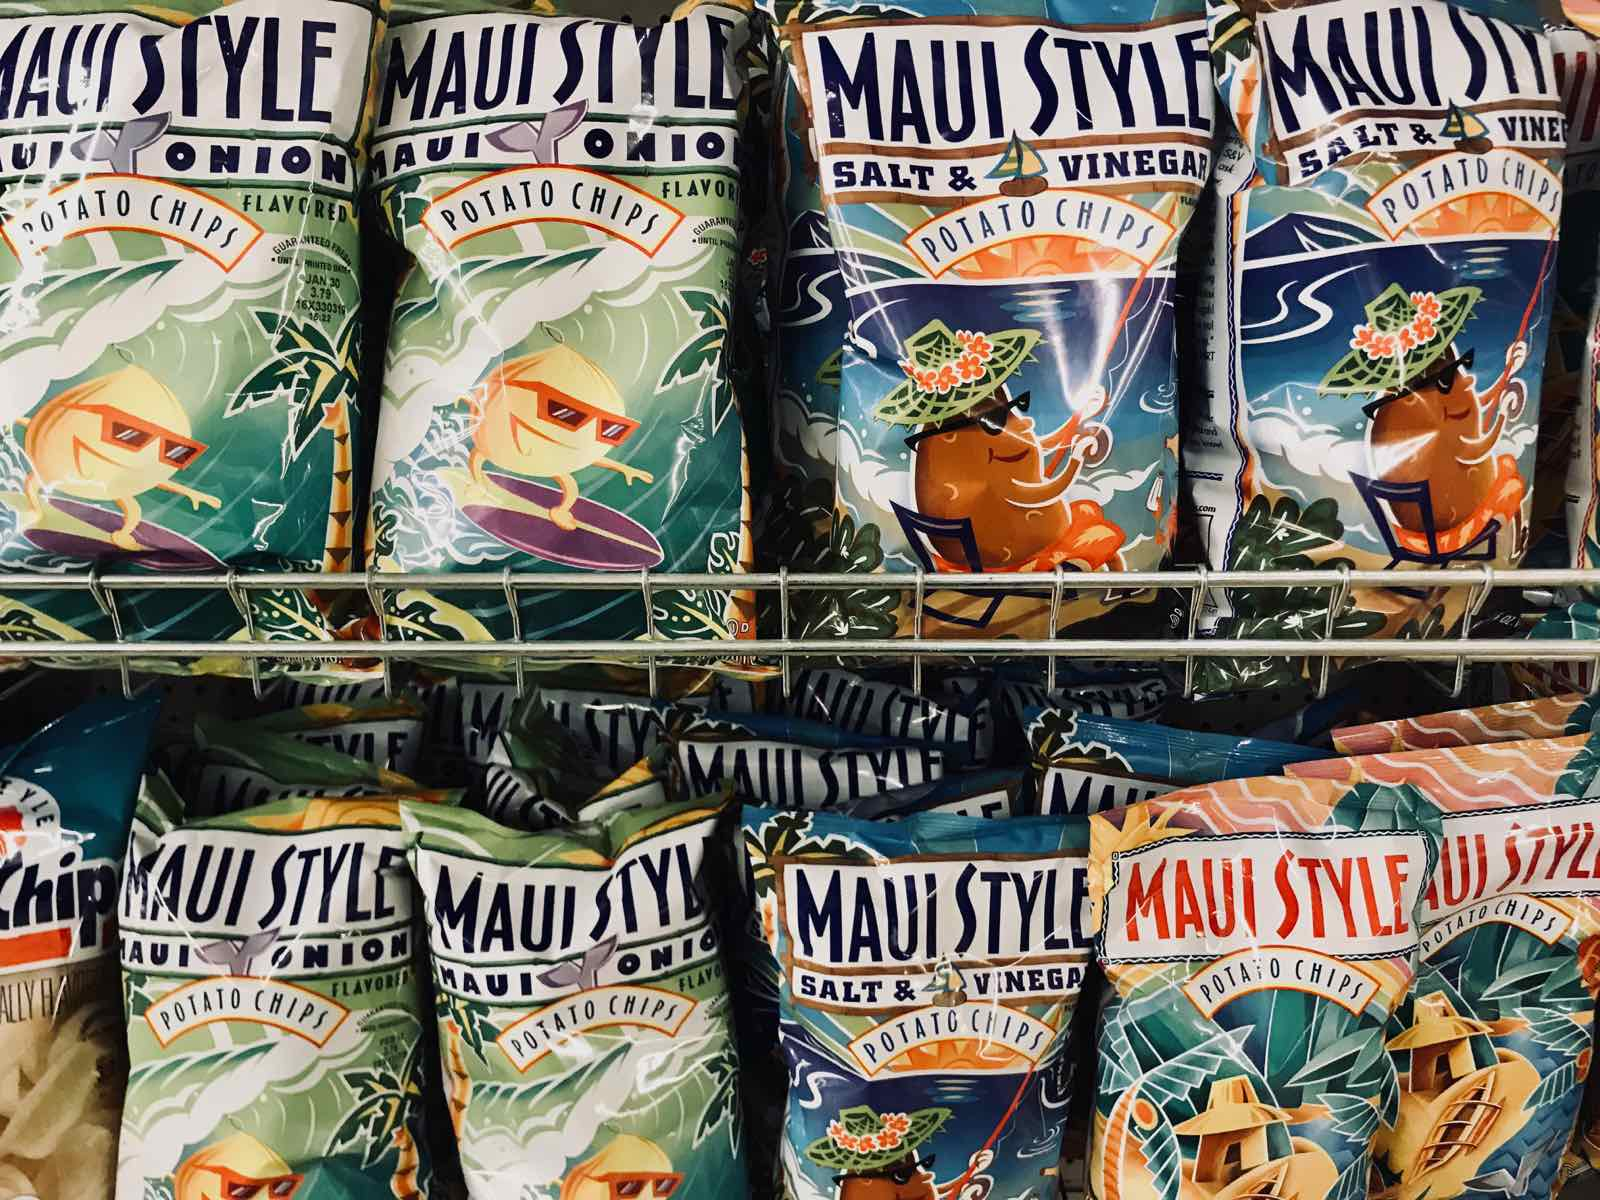 maui-style-potato-chips.jpg